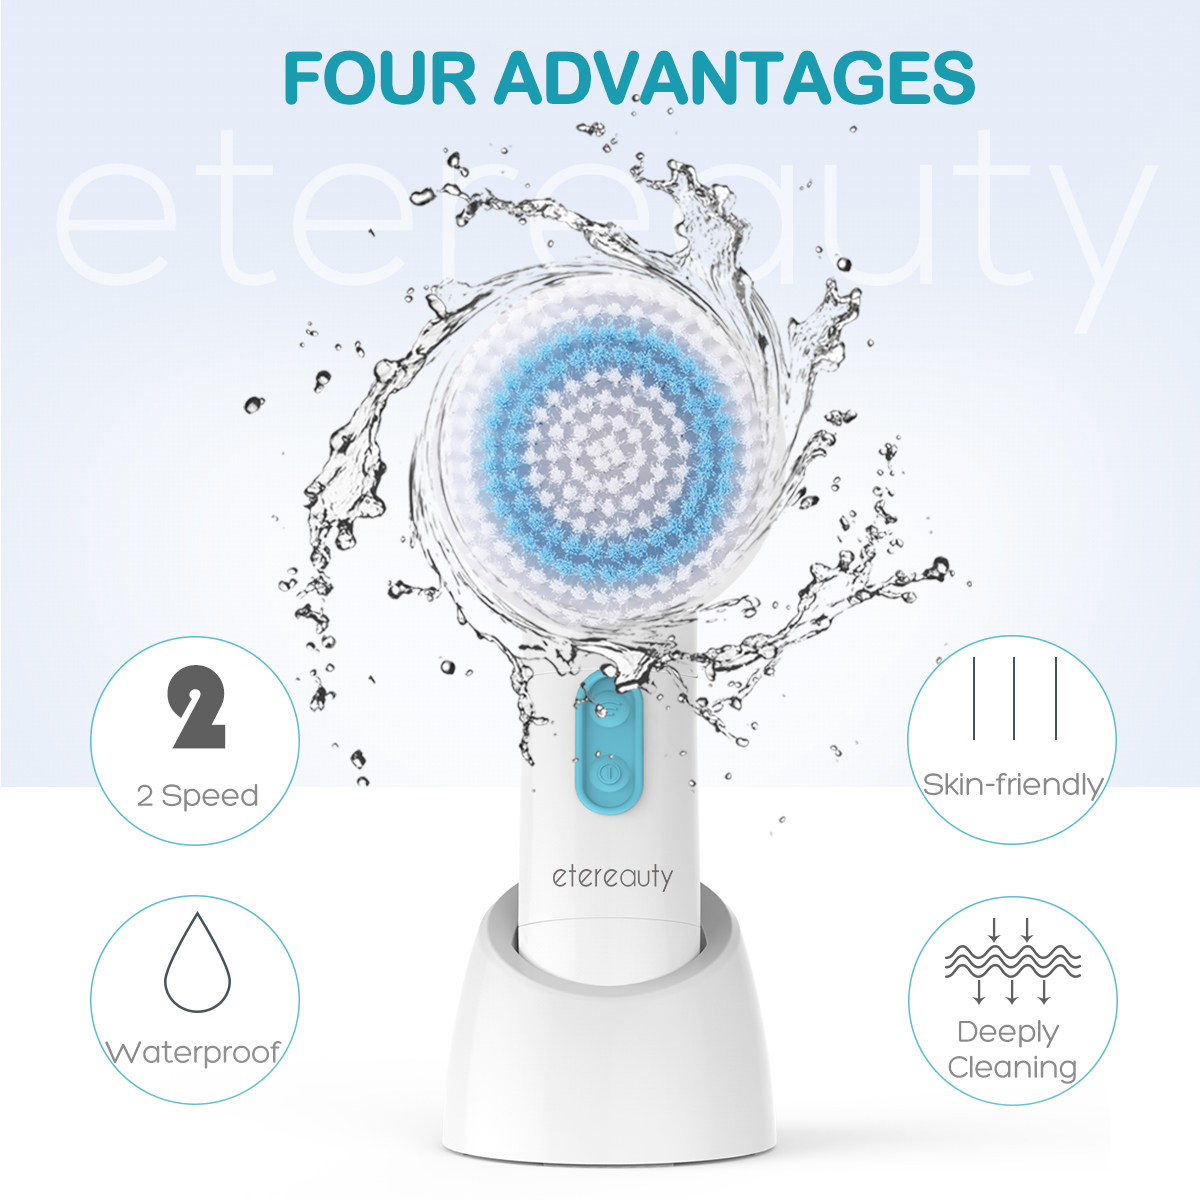 ETEREAUTY 5 In 1 Electric Facial Washing Cleaning Machine Face Skin Care Tool Vibrator Massager Face Cleansing Brush